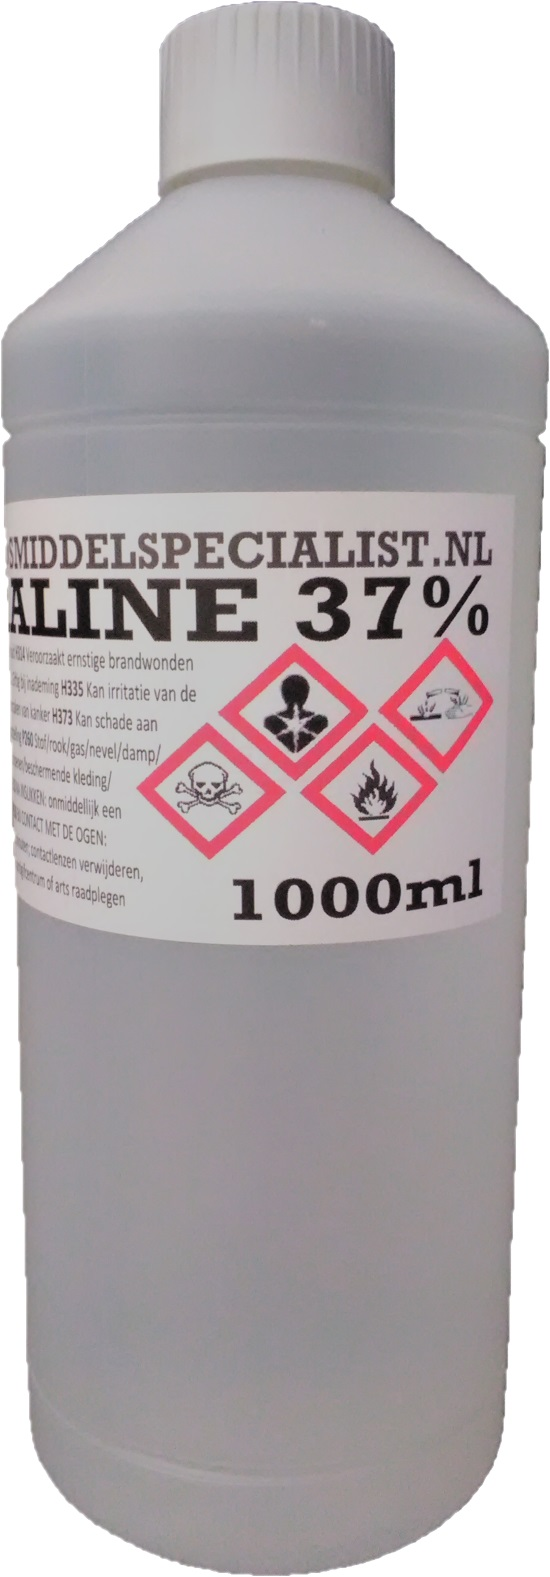 formaline formaldehyde 1000ml